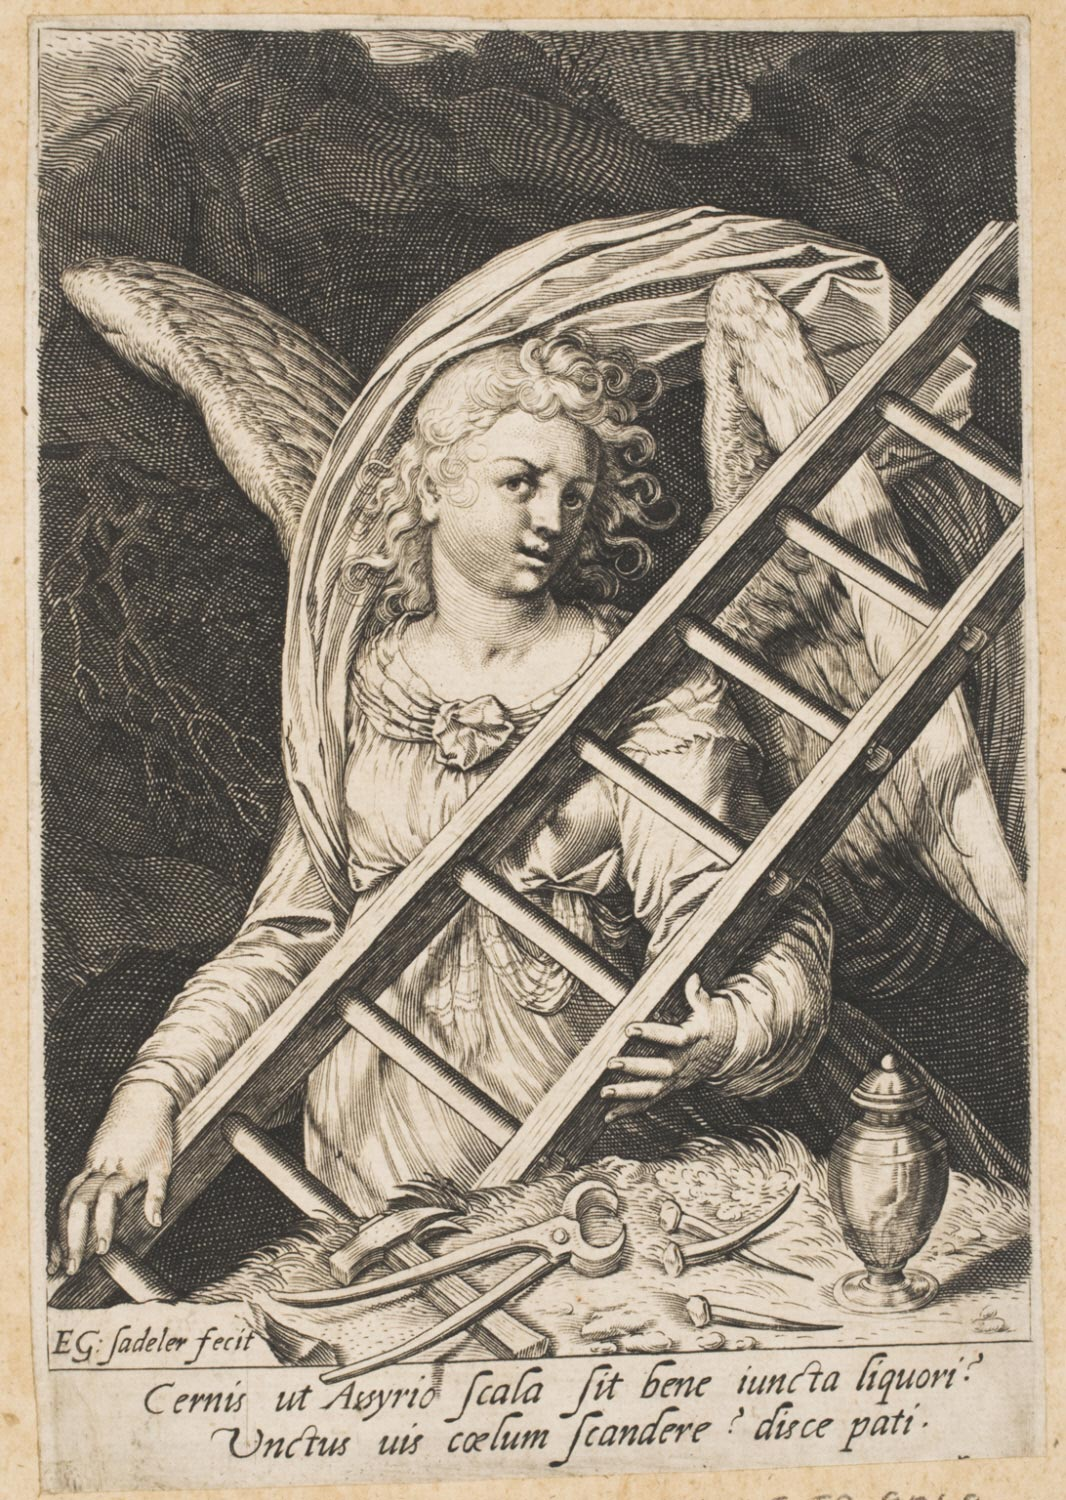 Angel with the Ladder, Tools, Nails and Ointment Jar